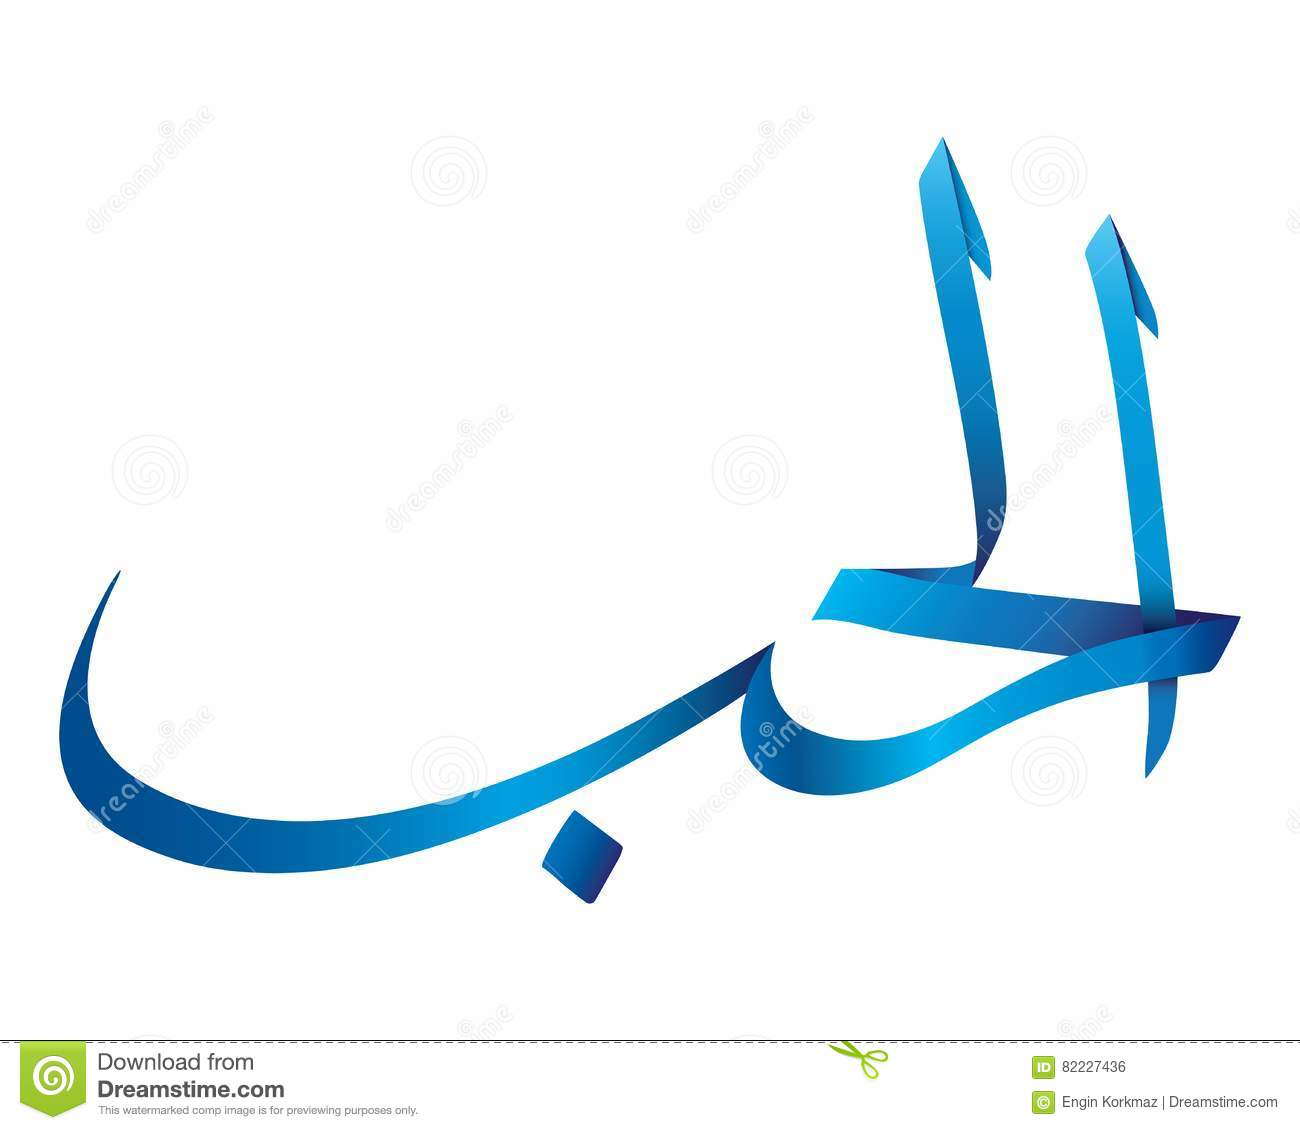 Arabic Typography Love Stock Vector Illustration Of Element 82227436